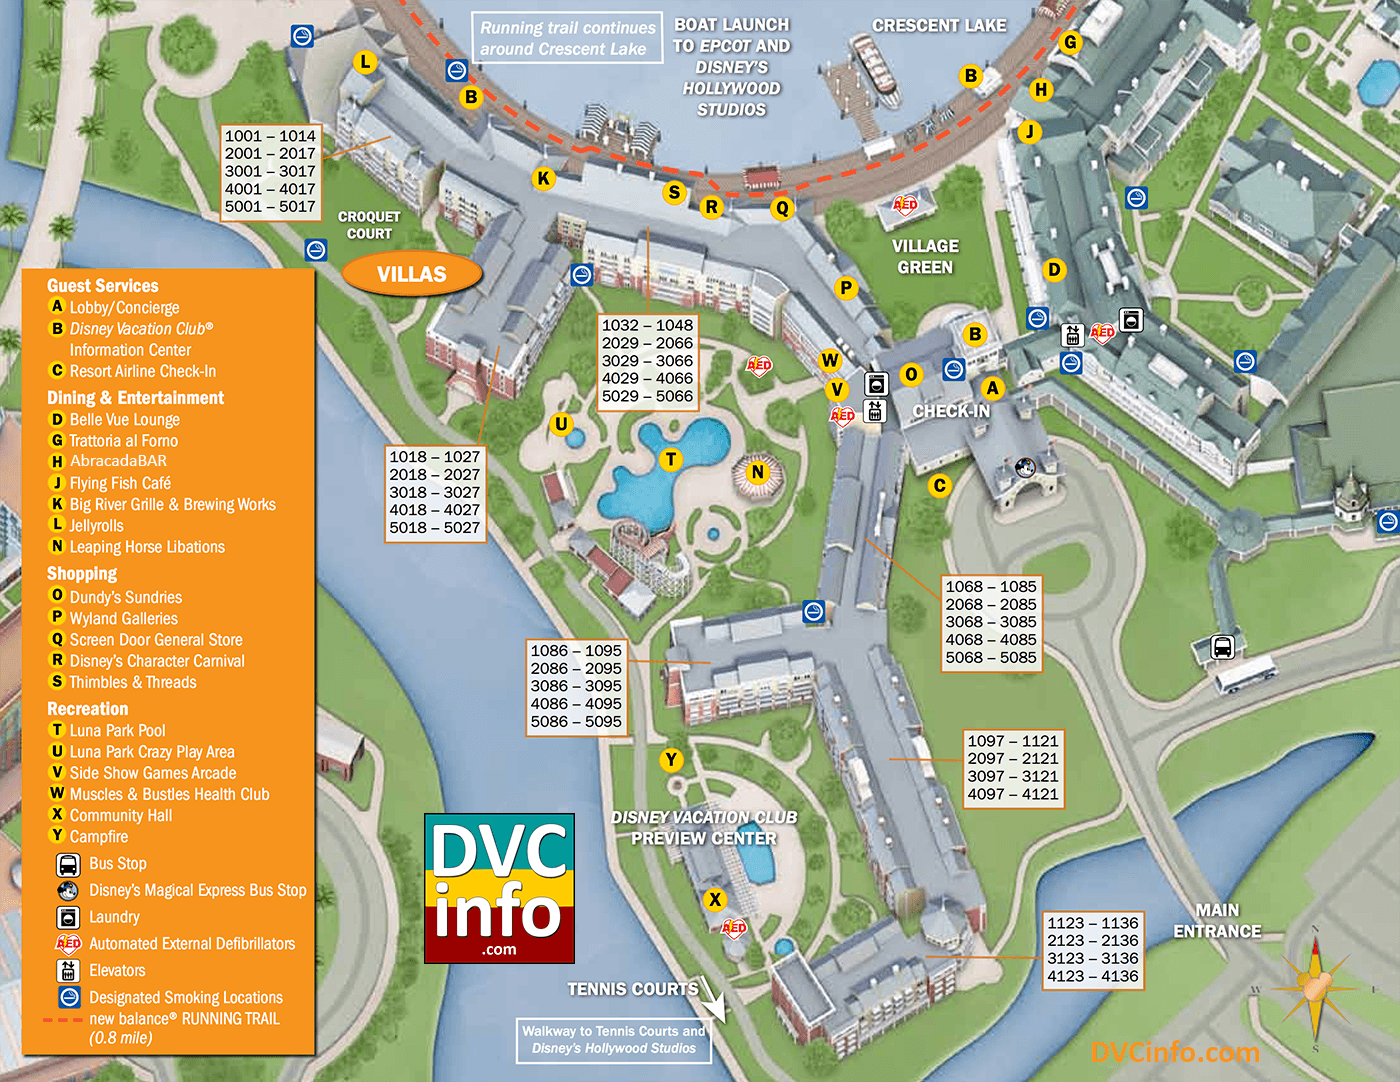 Disney\'s BoardWalk Villas - DVCinfo